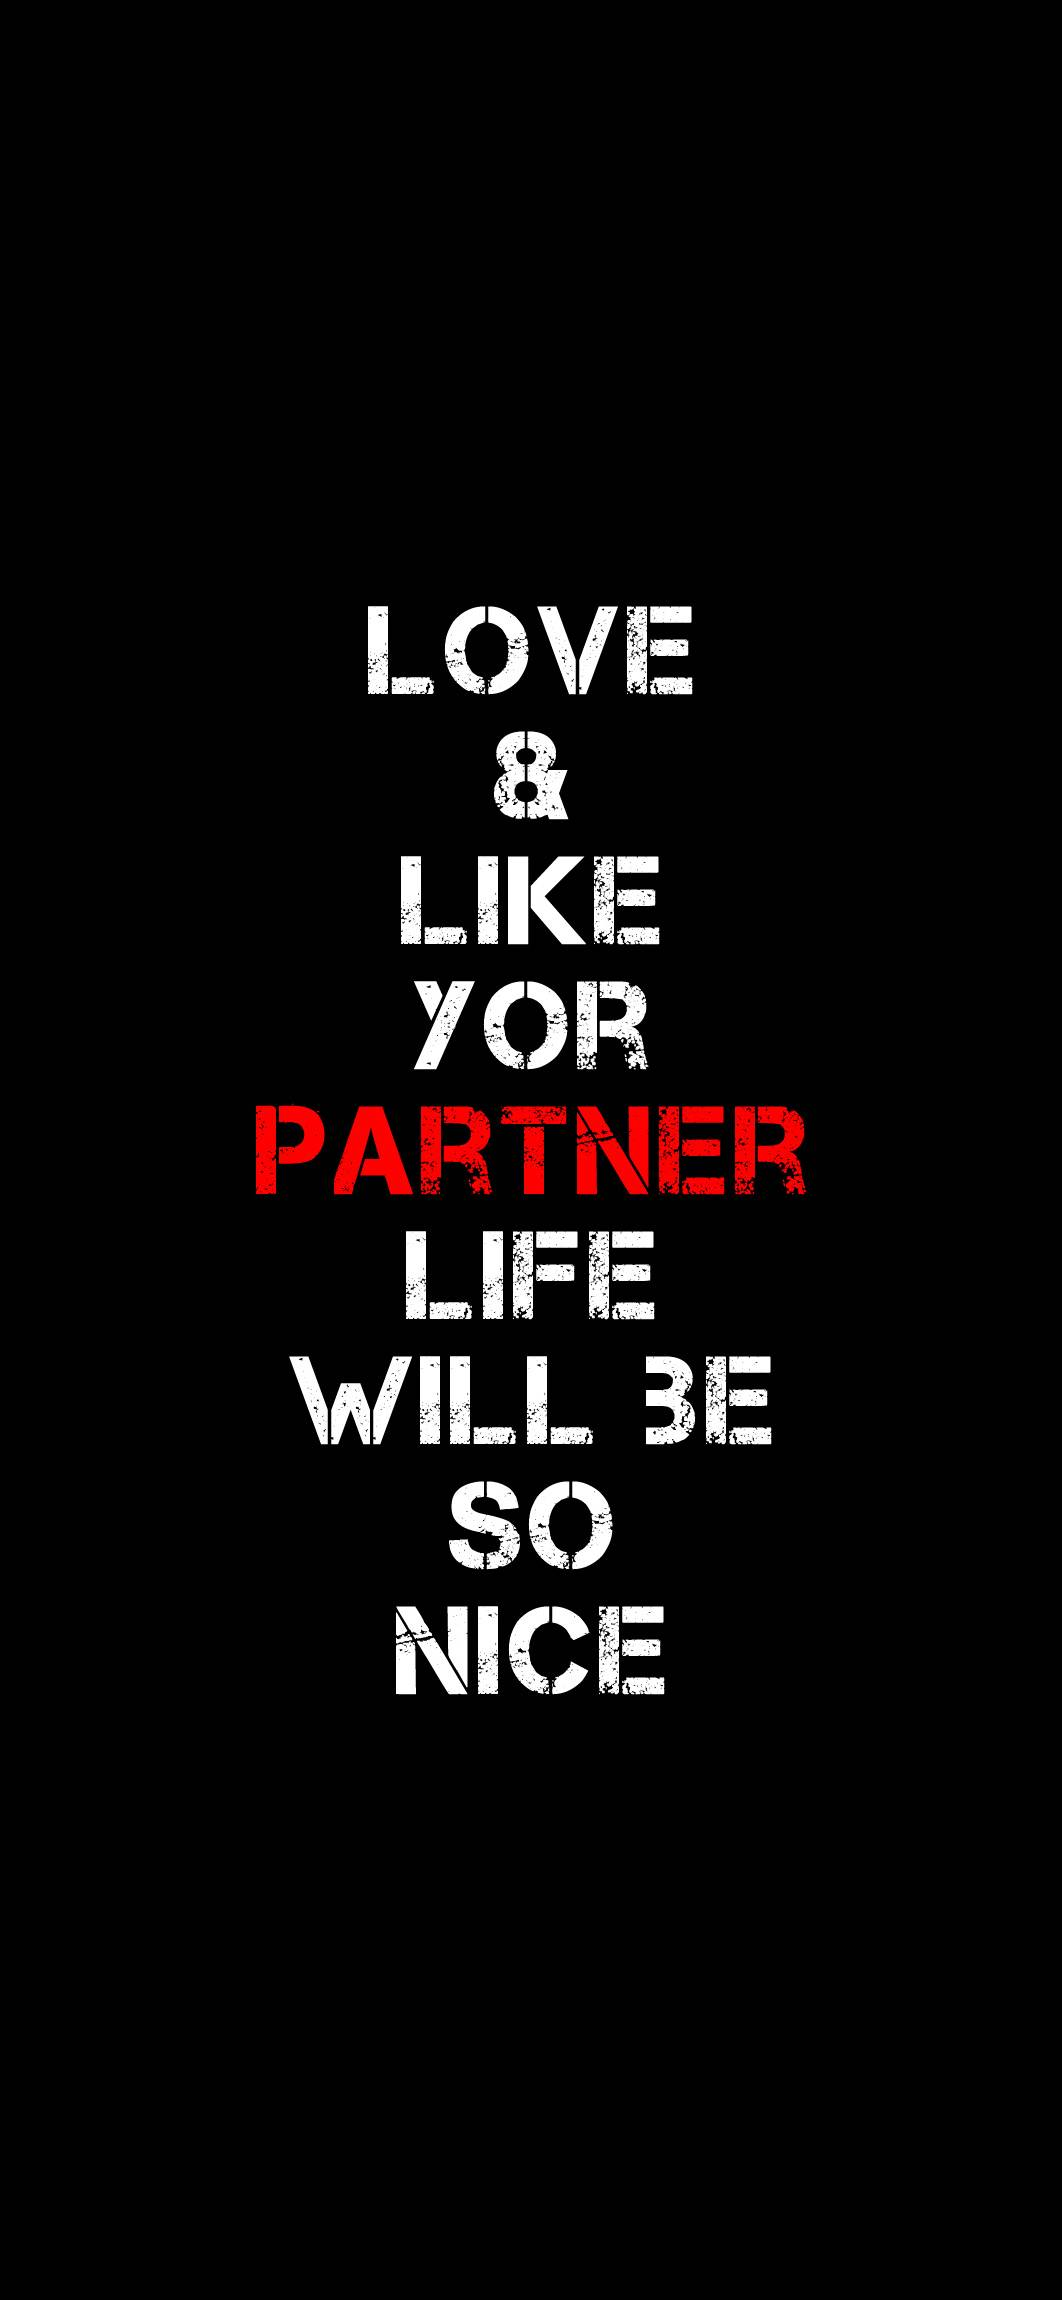 Love And Like Your Partner Motivational Wallpaper